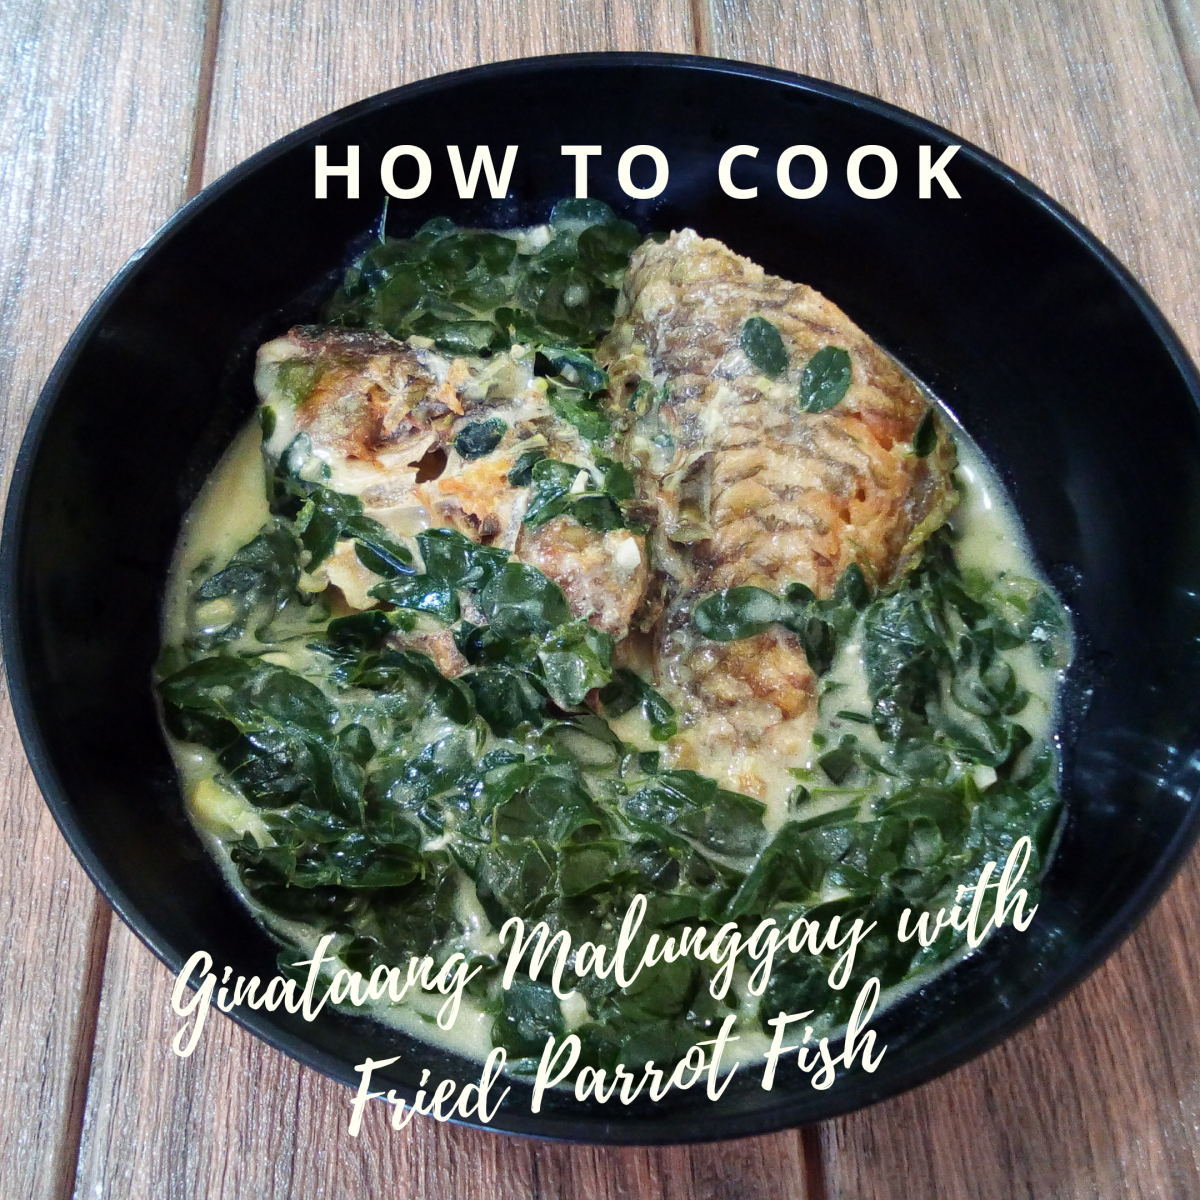 Learn how to make ginataang malunggay with fried parrotfish